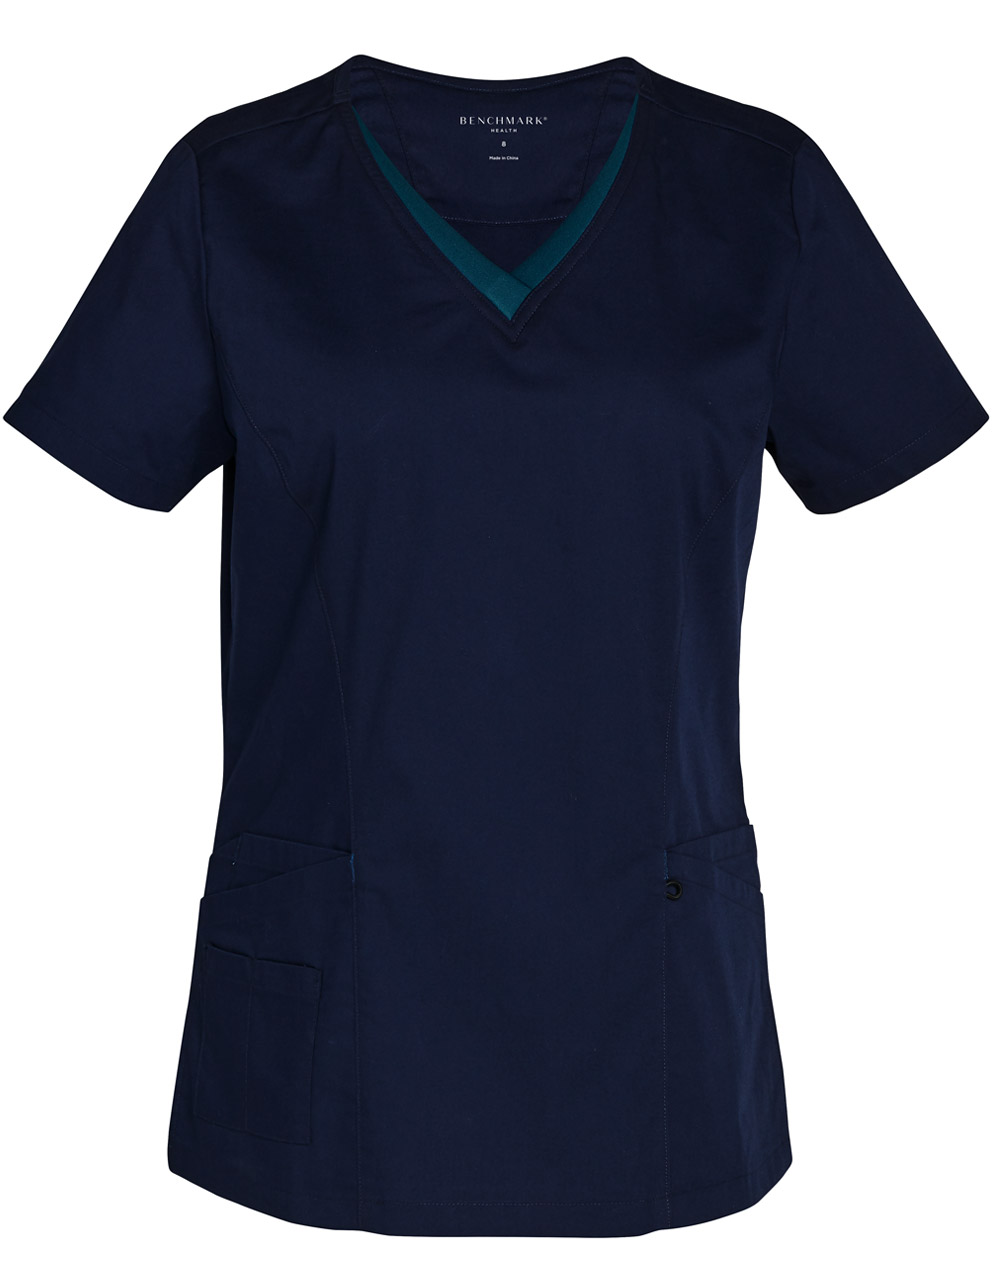 Buy Navy-Teal Ladies v-Neck Contrast Trim Scrub Top Online in Perth